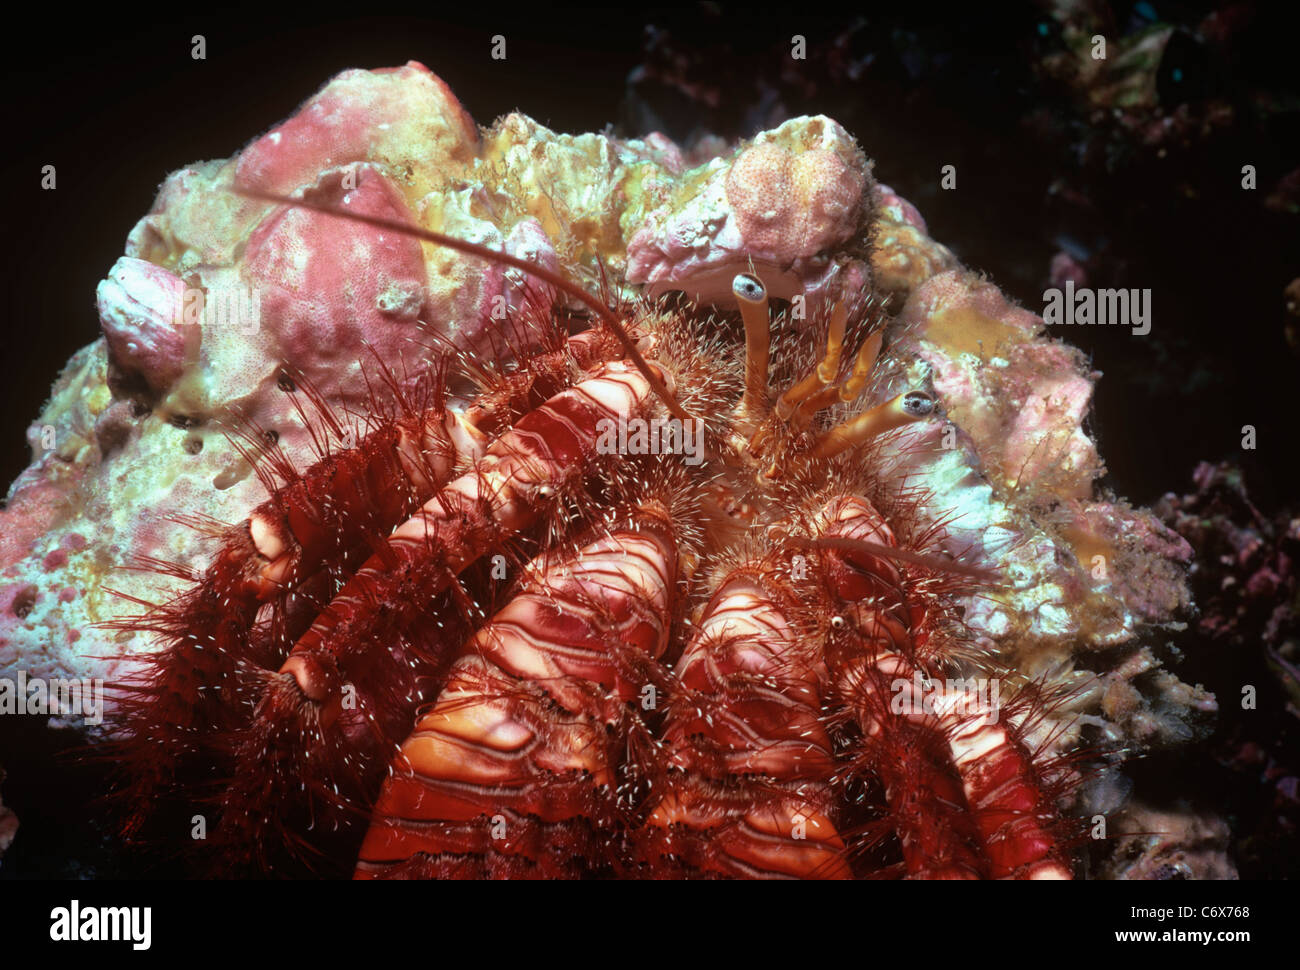 Hairy Hermit Crab (Aniculus elegans) camouflaged on coral reef at night, Tagus Cove, Galapagos Islands - Pacific - Stock Image